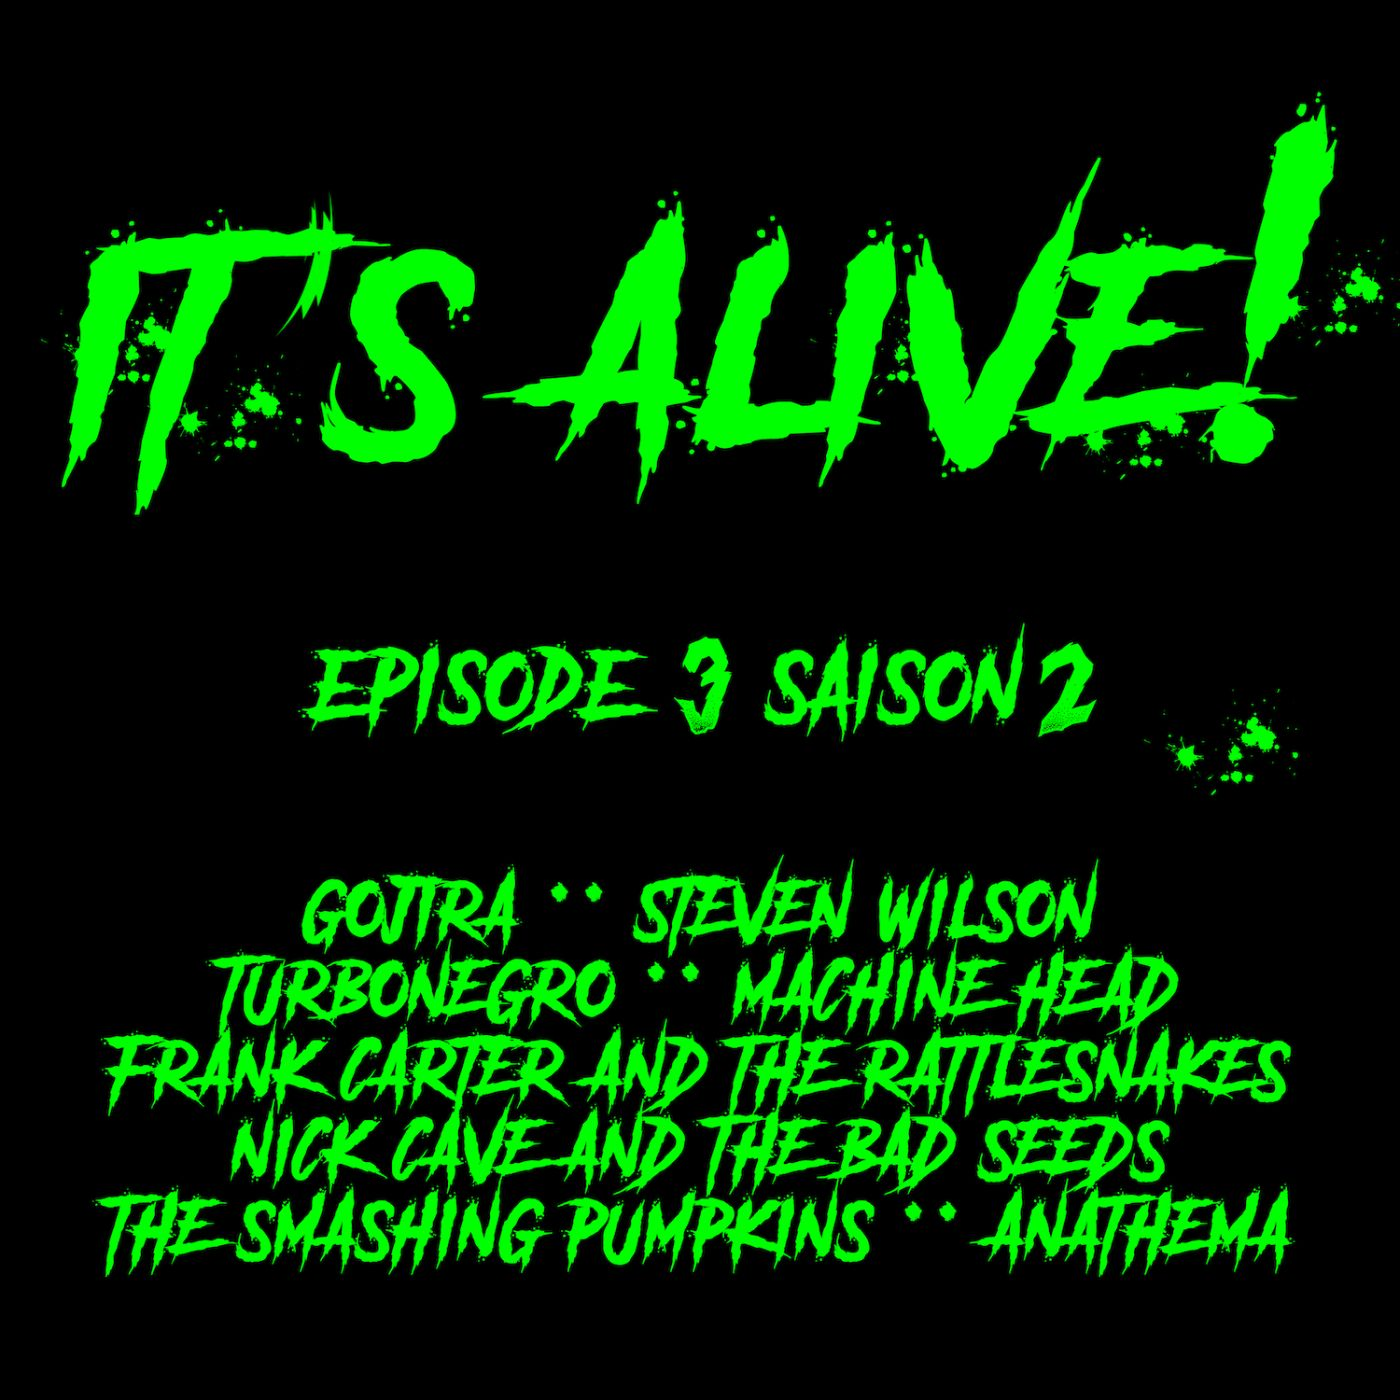 It's Alive! Episode 3